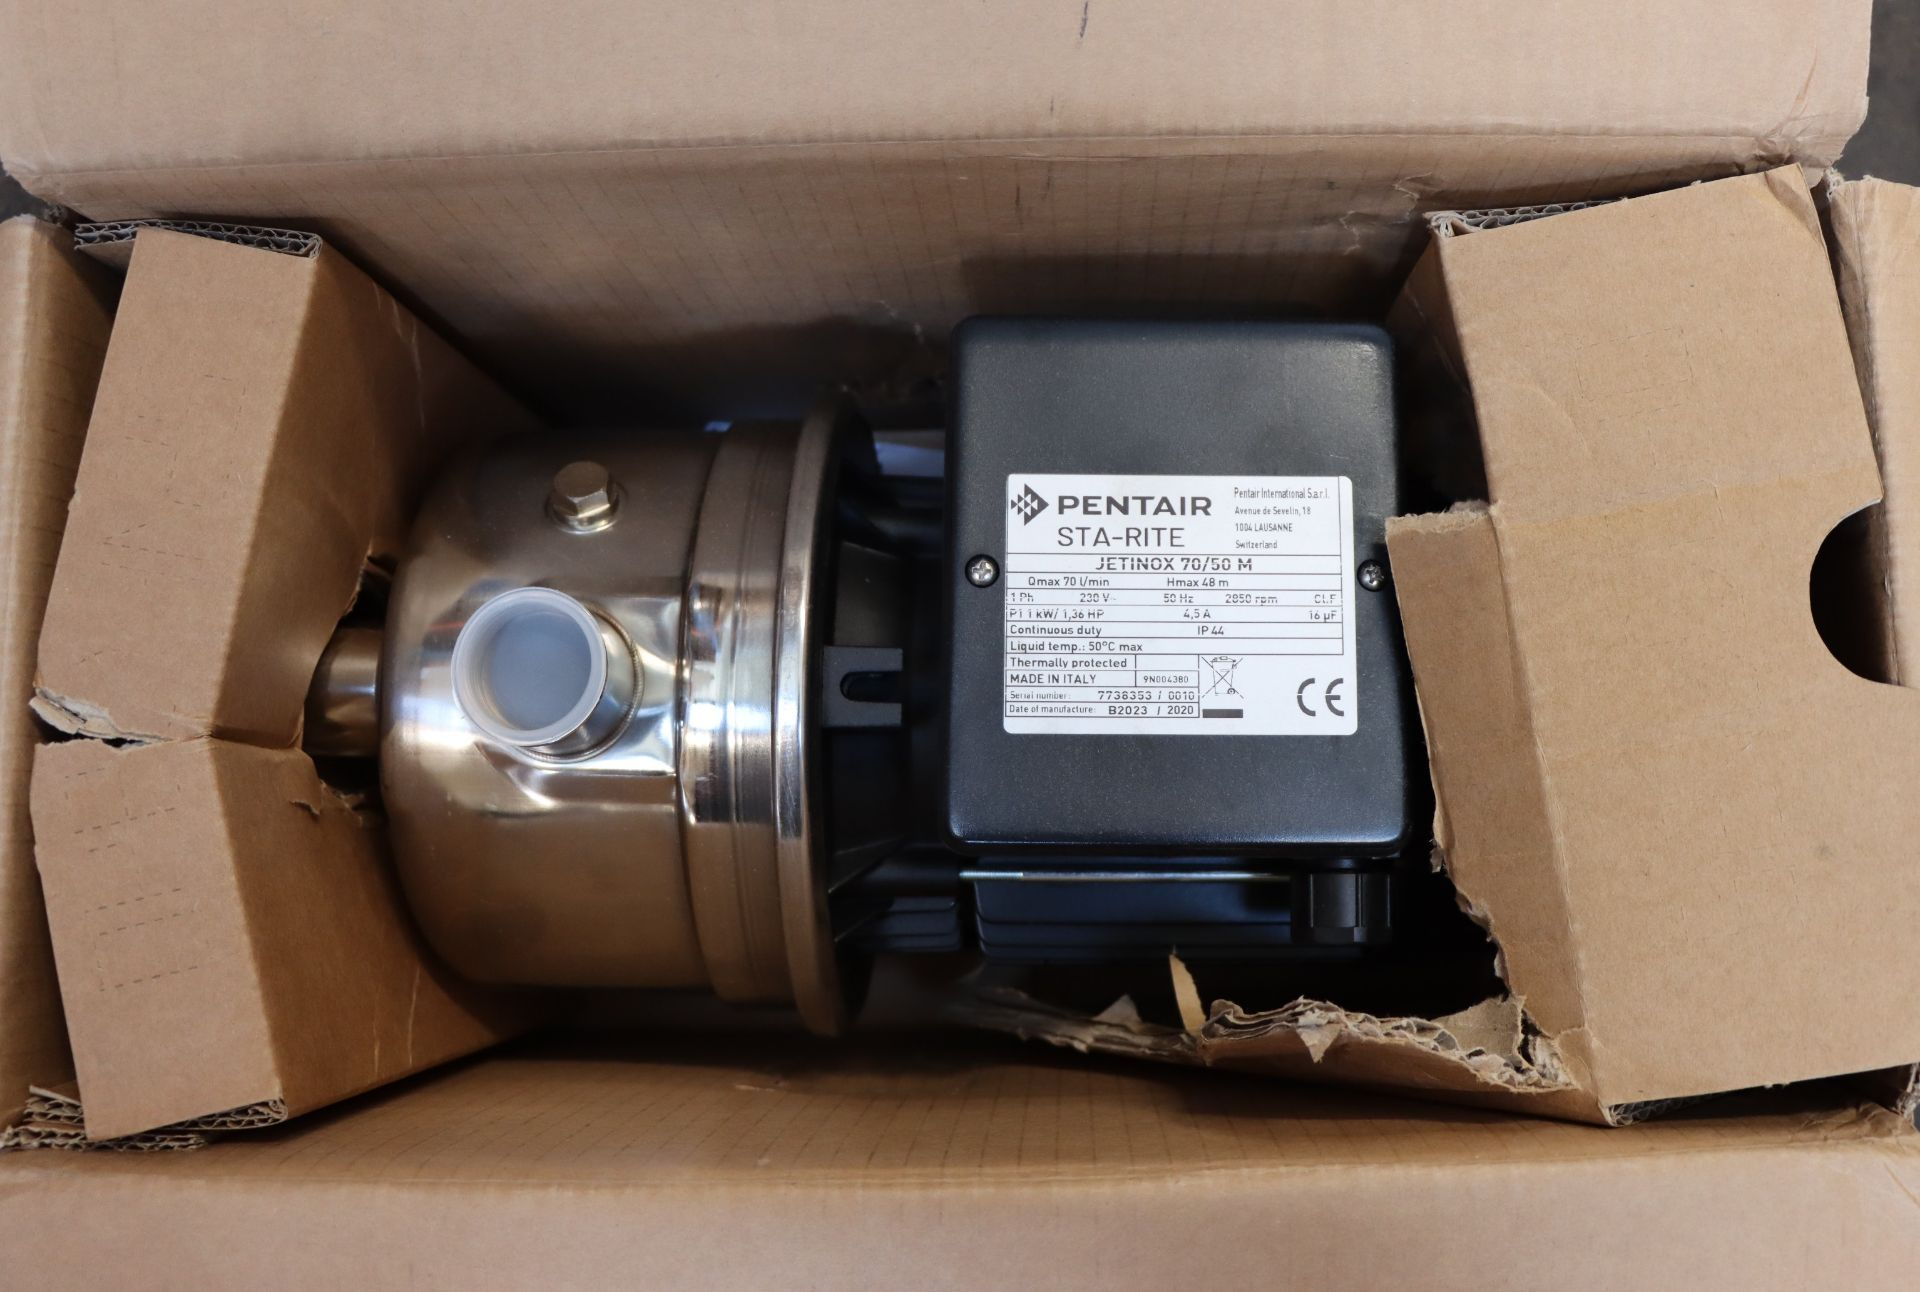 Lot 730 - One boxed as new Pentair STA RITE JETINOX 70/50 M stainless steel self priming pump.